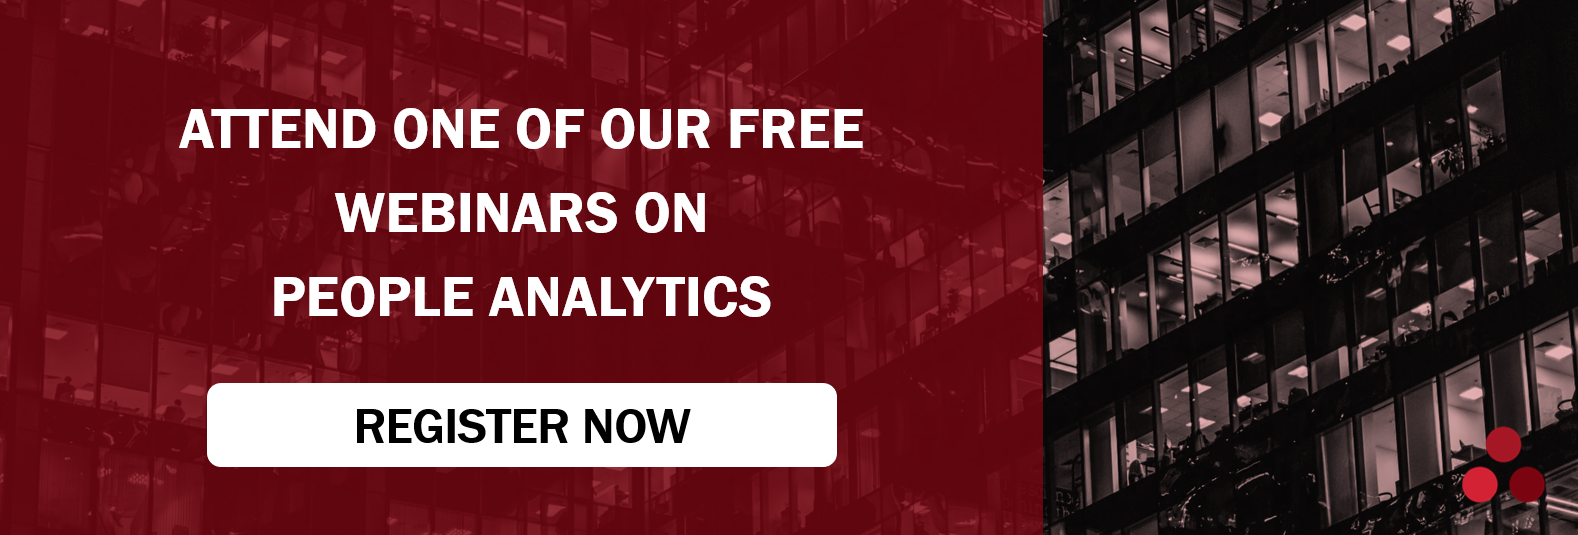 Attend our free people analytics webinars